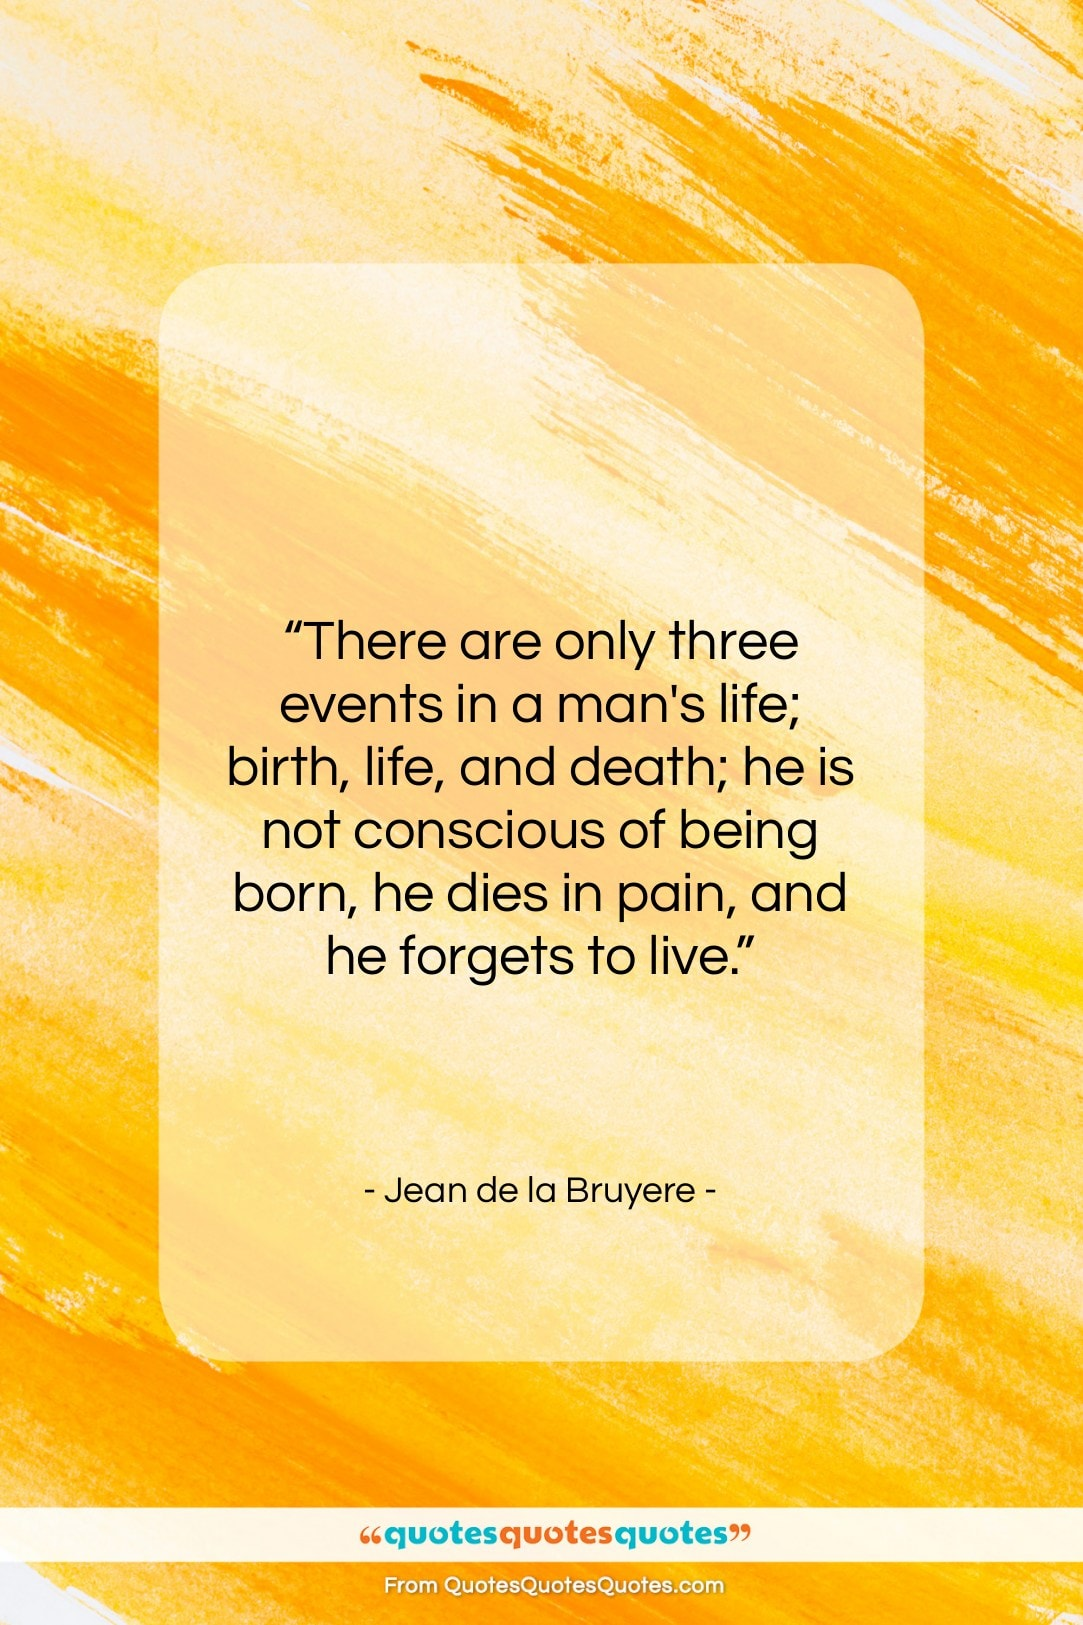 """Jean de la Bruyere quote: """"There are only three events in a…""""- at QuotesQuotesQuotes.com"""